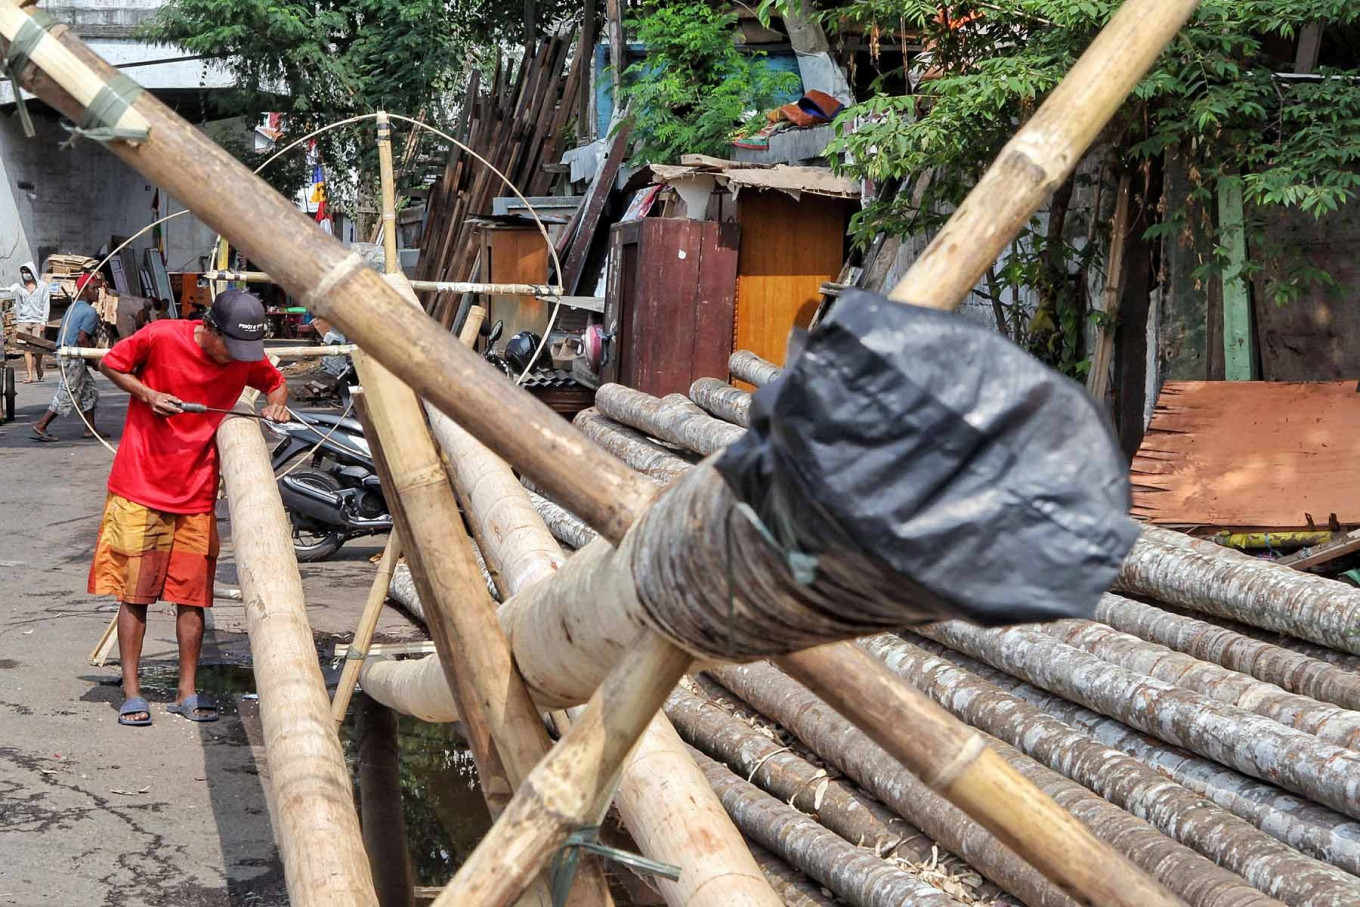 Aep, 50, shaves bamboo for panjat pinang (pole climbing) competitions, which are usually held during Indonesia's Independence Day celebrations, in Manggarai, Jakarta, on Aug. 13. Pinang bamboo craftsmen have seen a loss in income after the Jakarta administration restricted events that attract crowds amid the surge in COVID-19 cases. While in normal years, a craftsman can sell up to 50 pinang, this year they haven't been able to sell any.